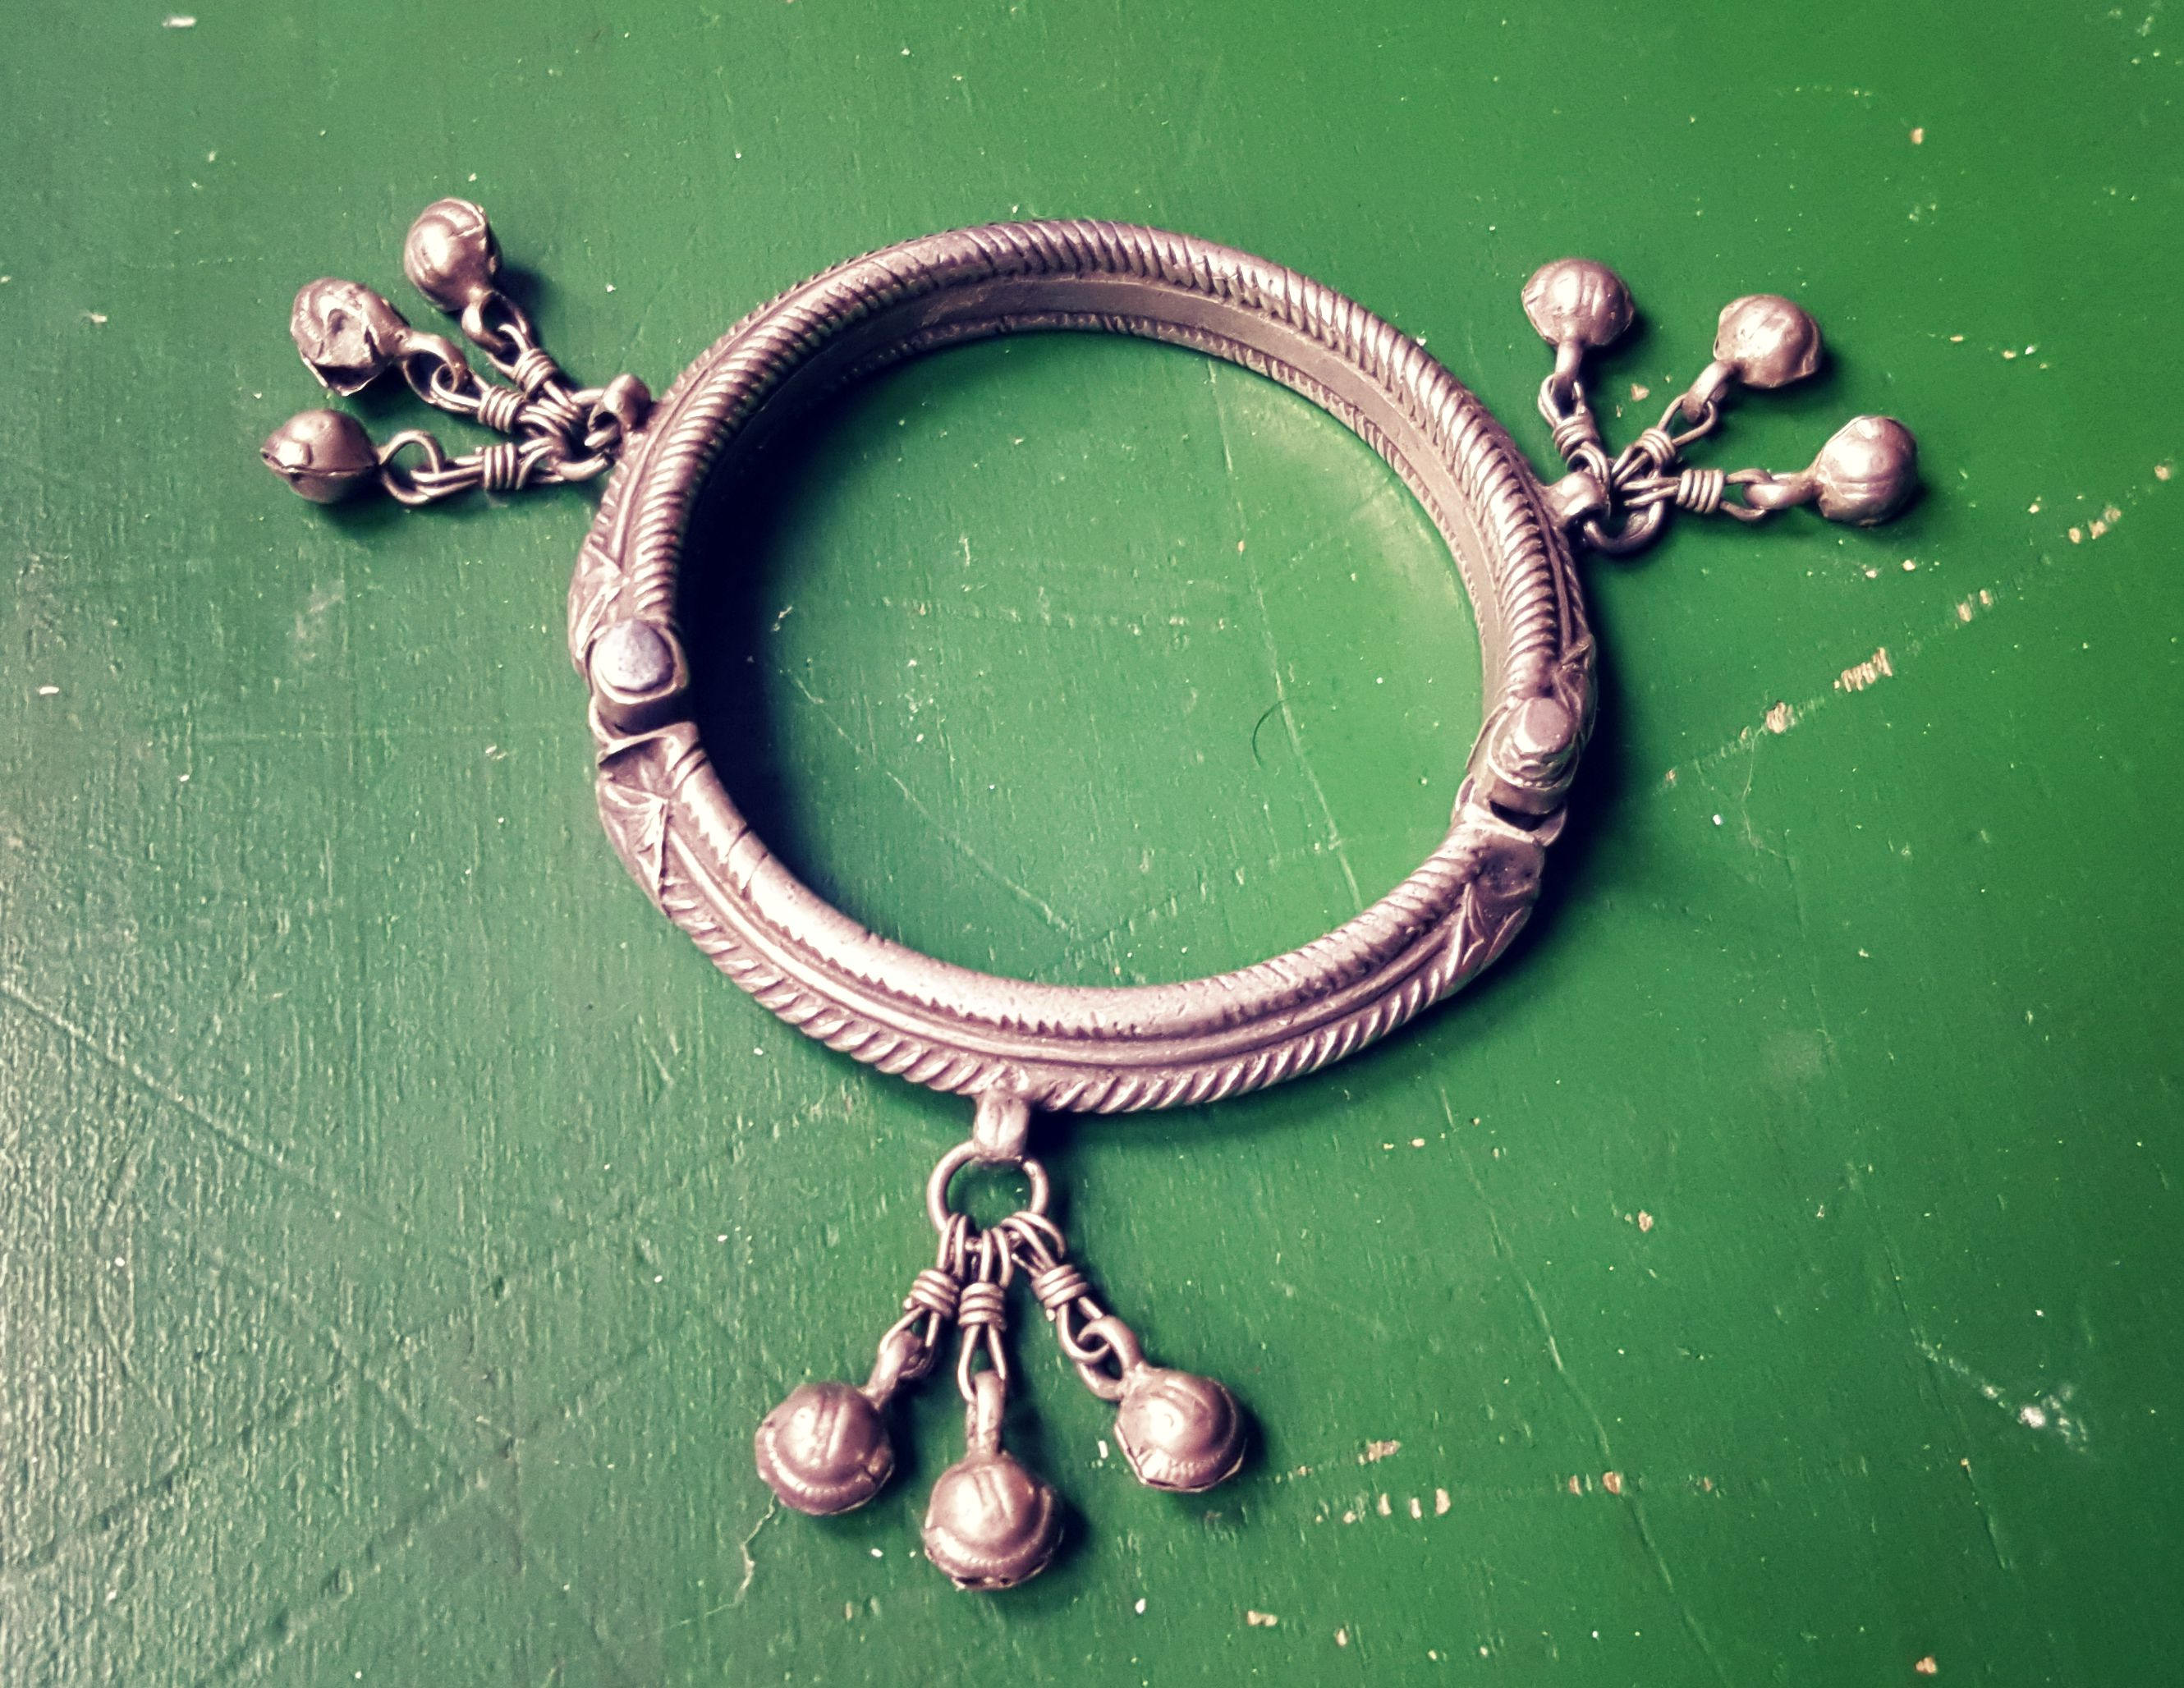 Rajasthani Silver Bracelet with Bells - Rajasthan Jewellery - Rajasthan Silver - Indian Tribal Silver Bracelet